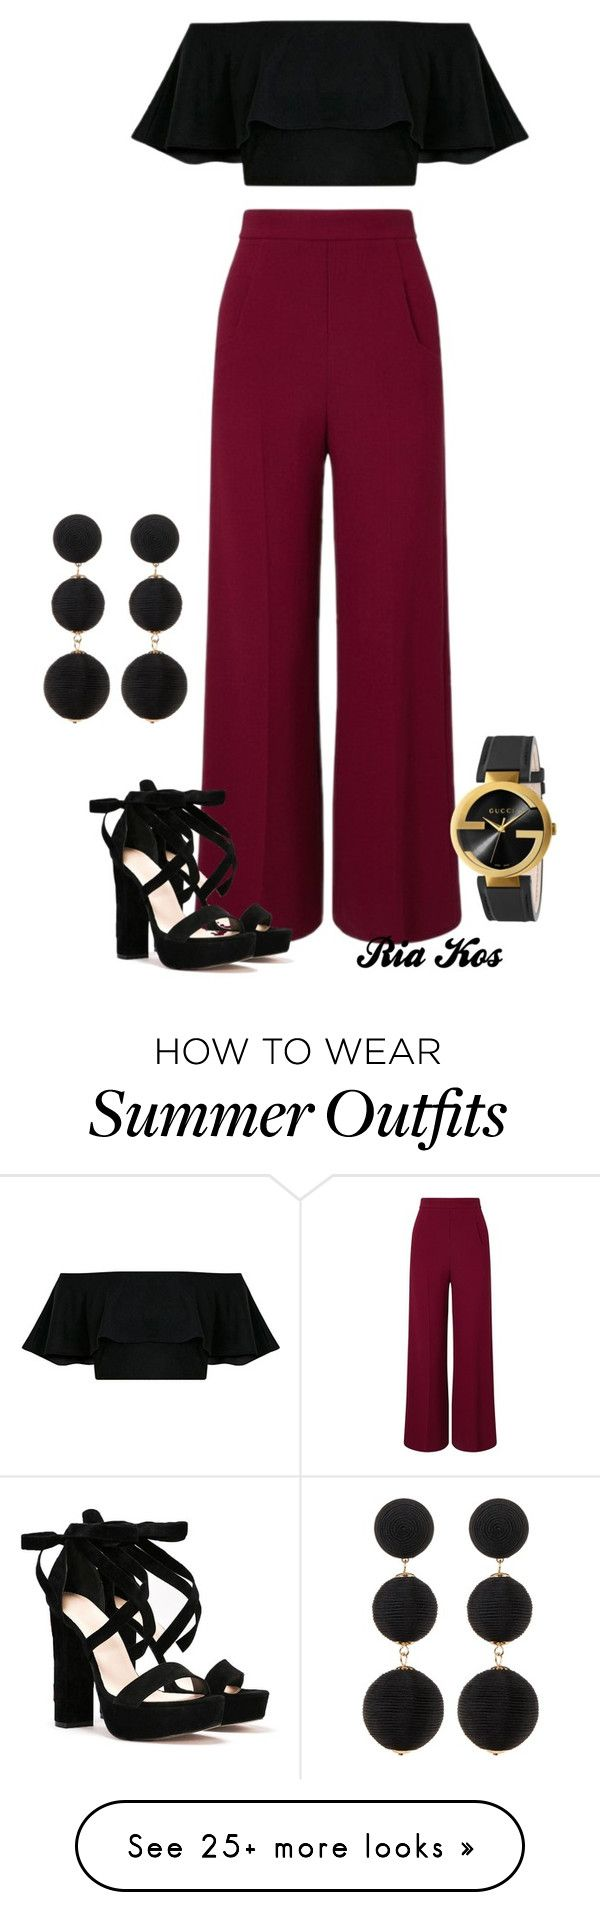 """summer outfit"" by ria-kos on Polyvore featuring Roland Mouret, Nasty Gal, Cara Accessories and Gucci"